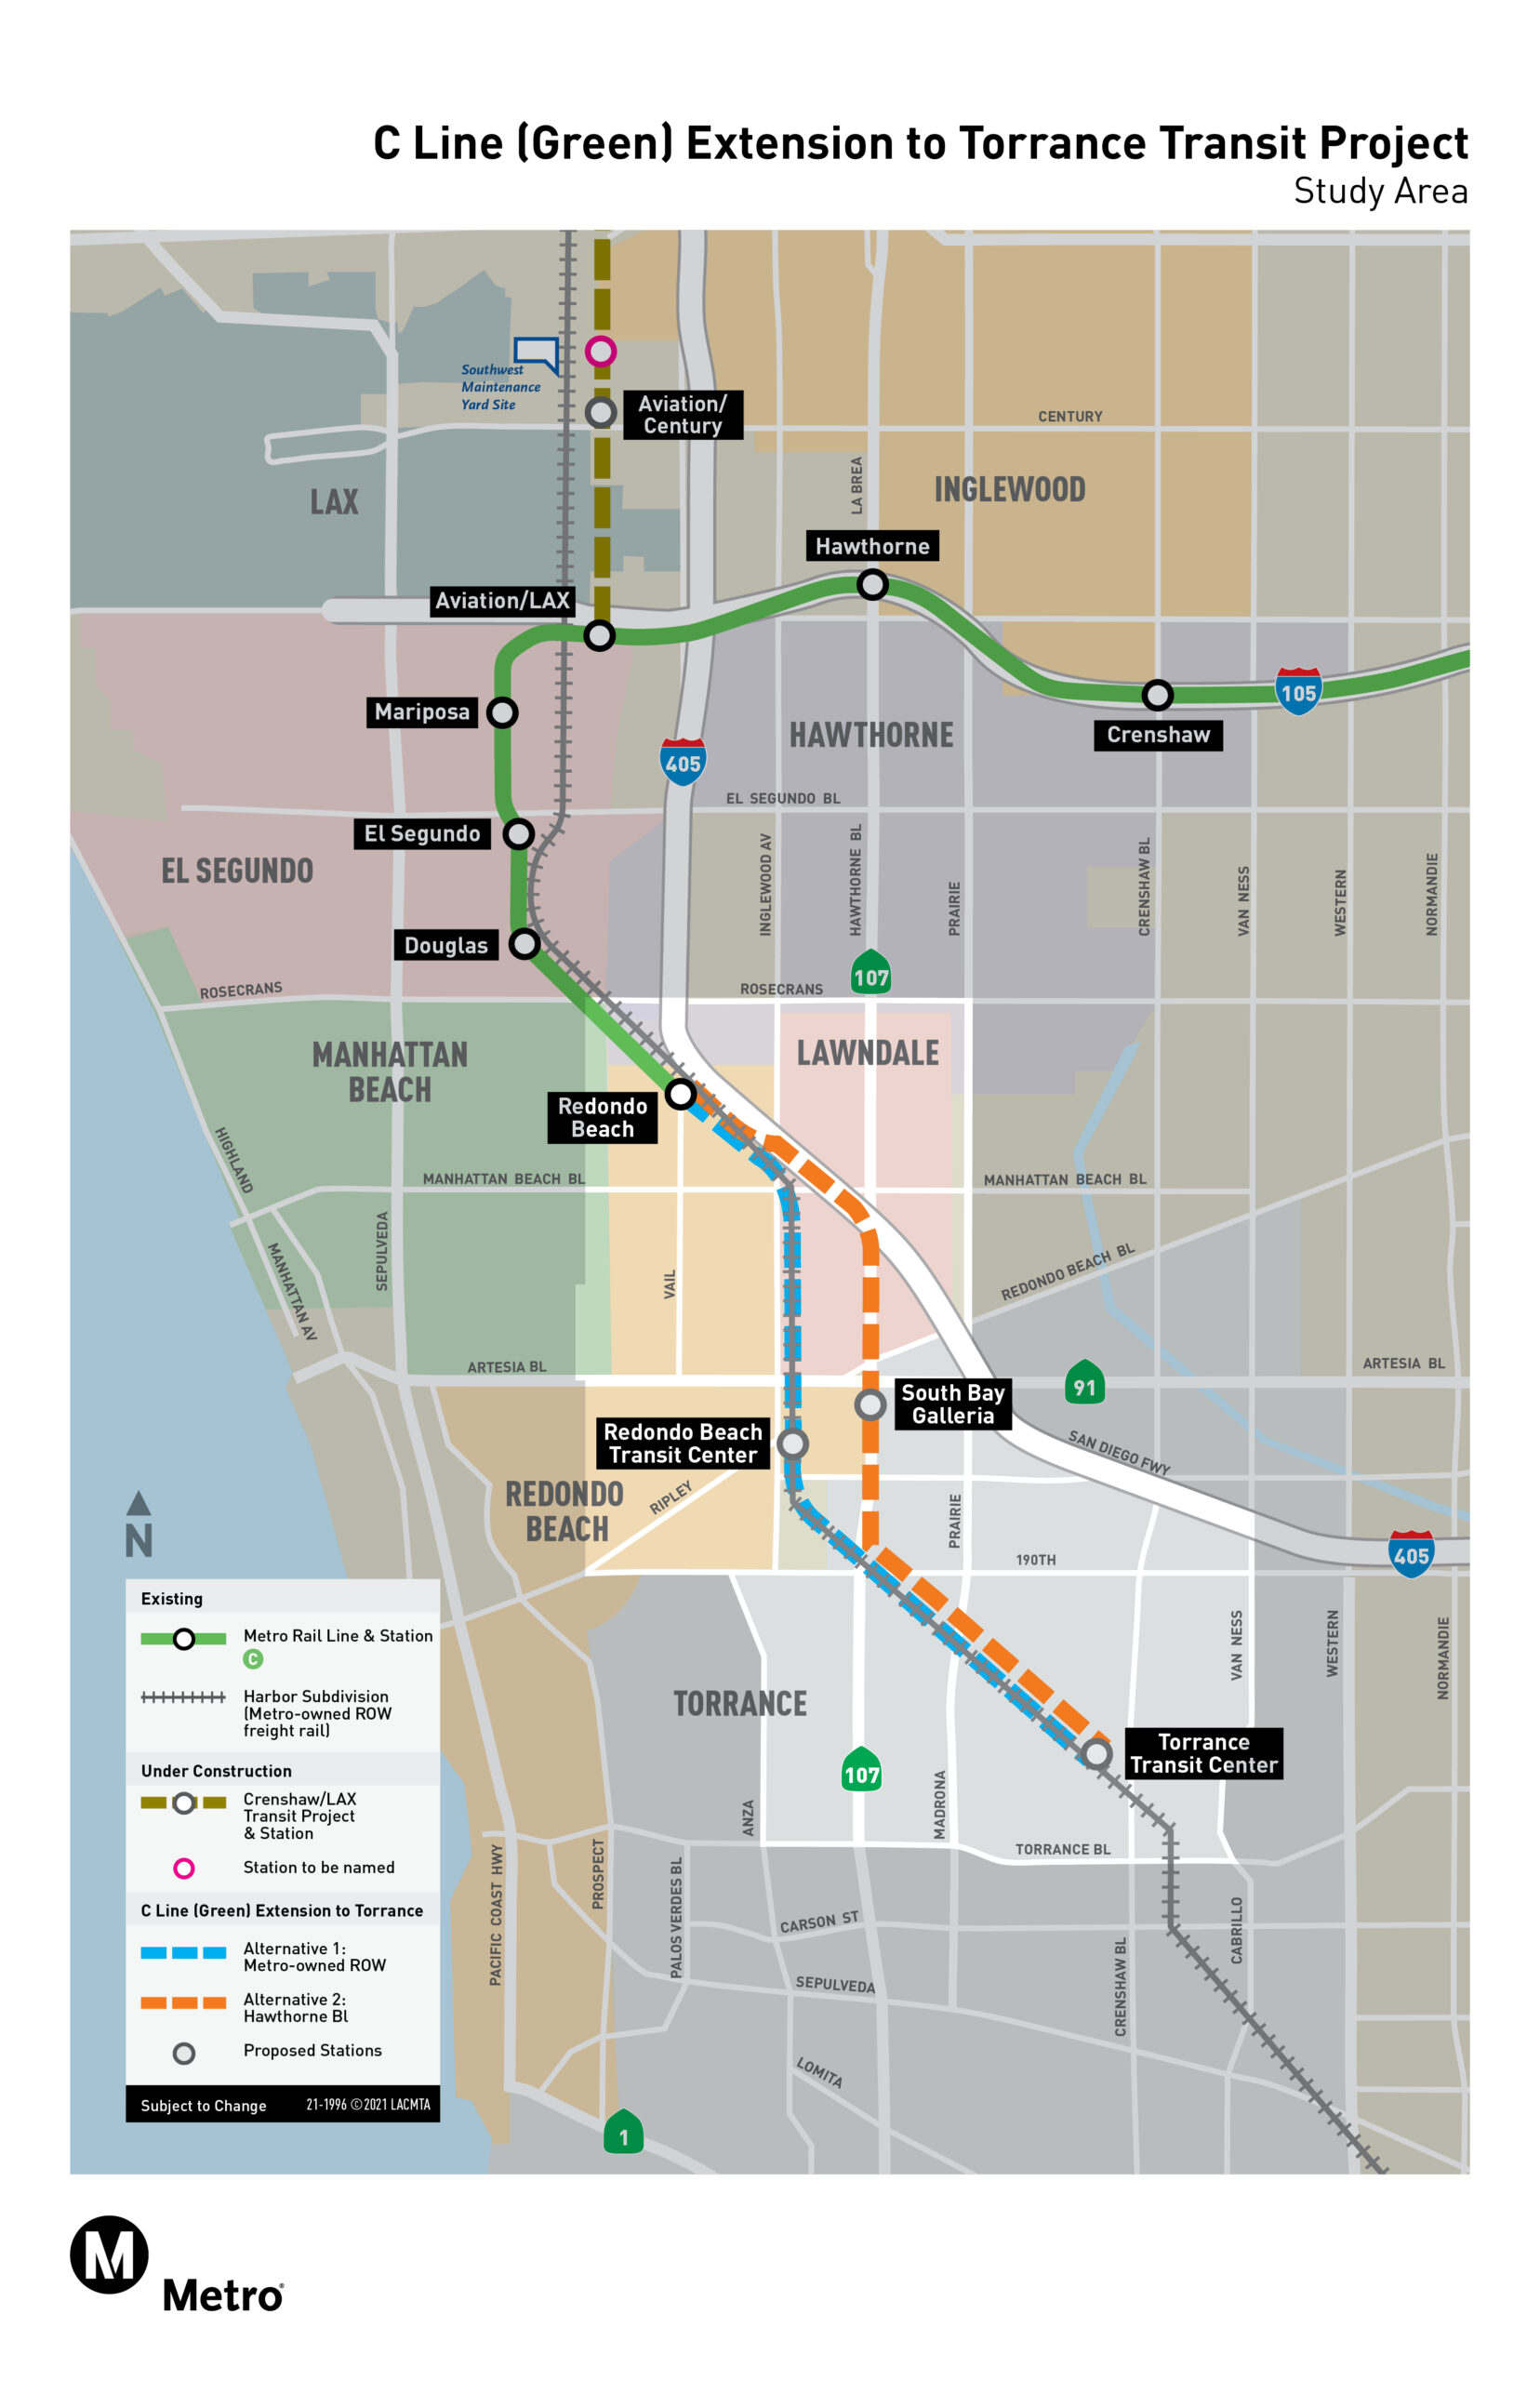 C Line (Green) Extension to Torrance Project Map